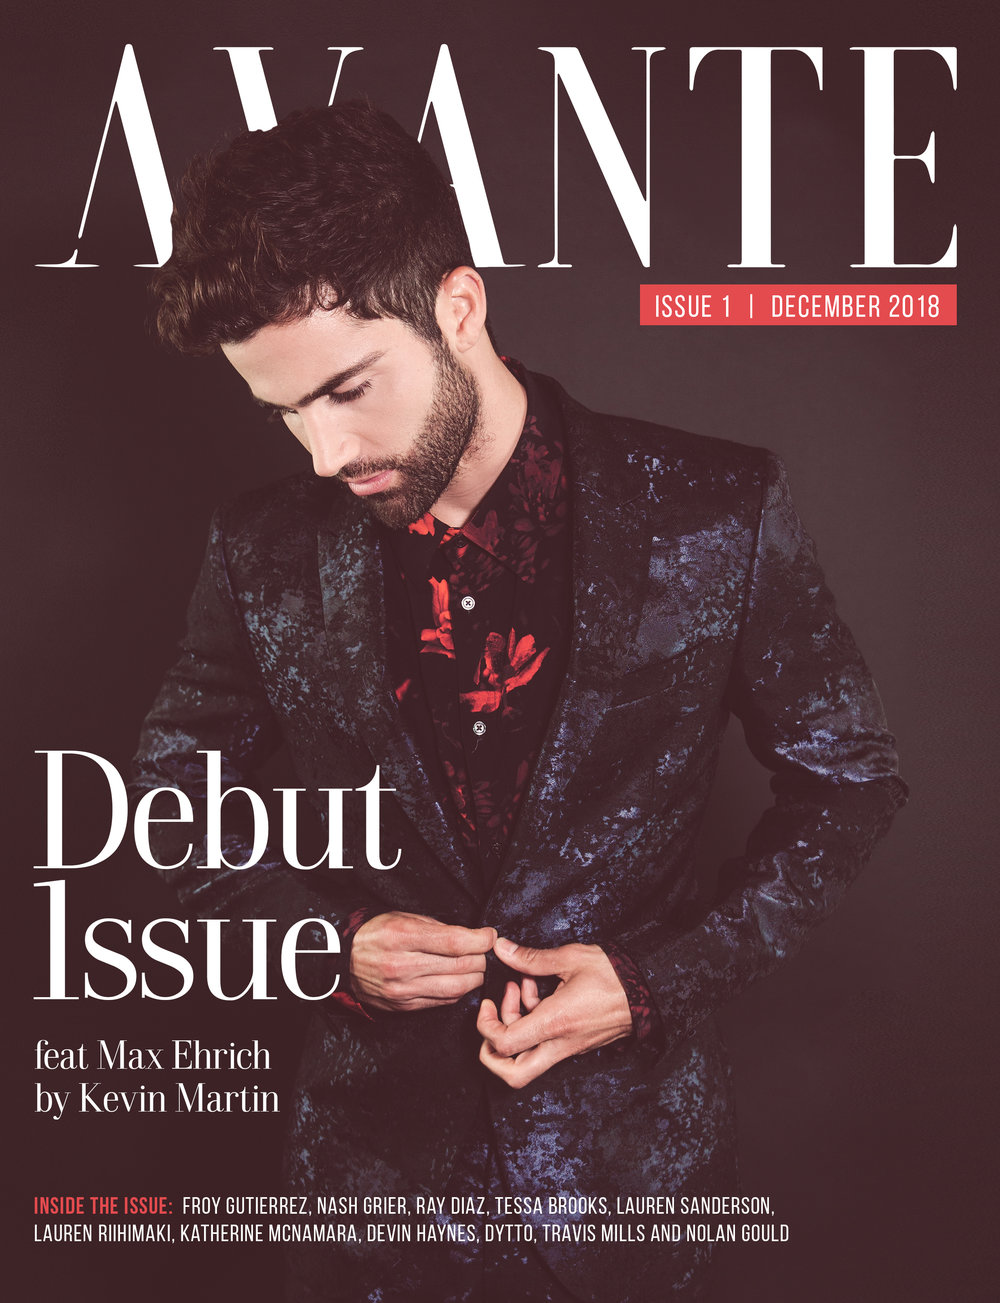 Debut Issue: Max Ehrich Cover